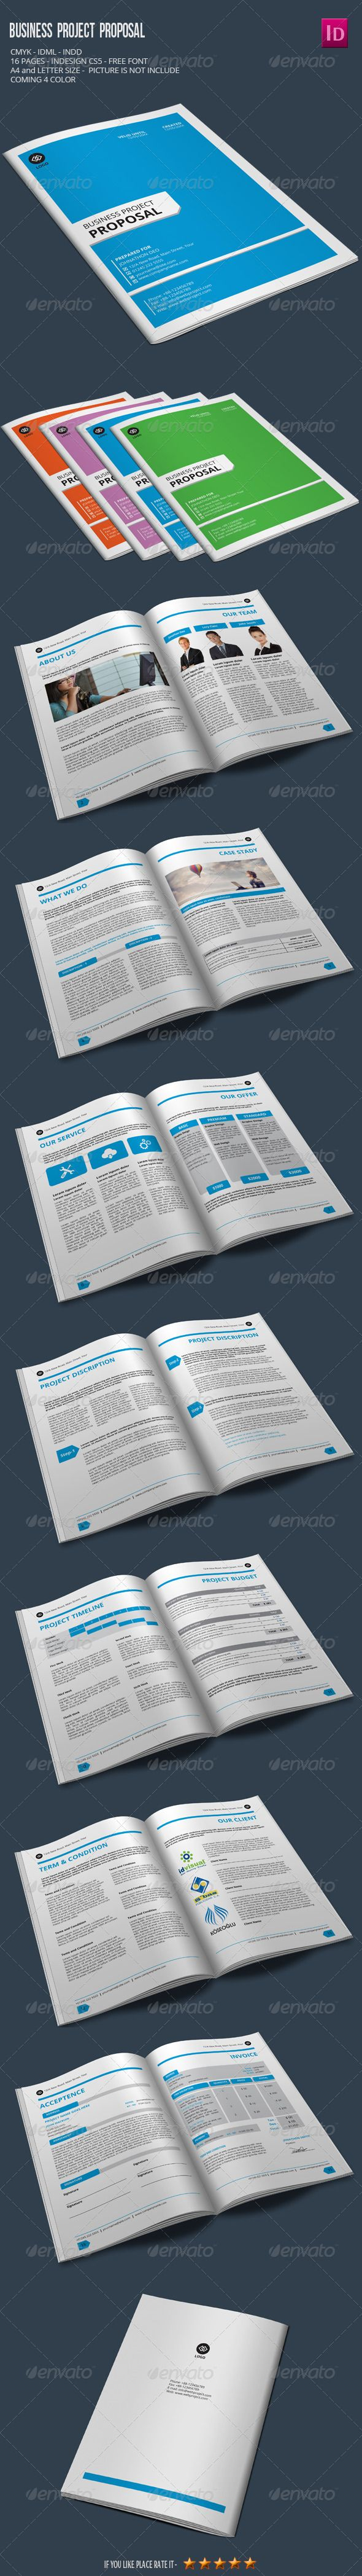 cover letter for bid proposal%0A Business Project Proposal by alimran   DiscriptionA  page sizeReady for  print      DPI CMYK